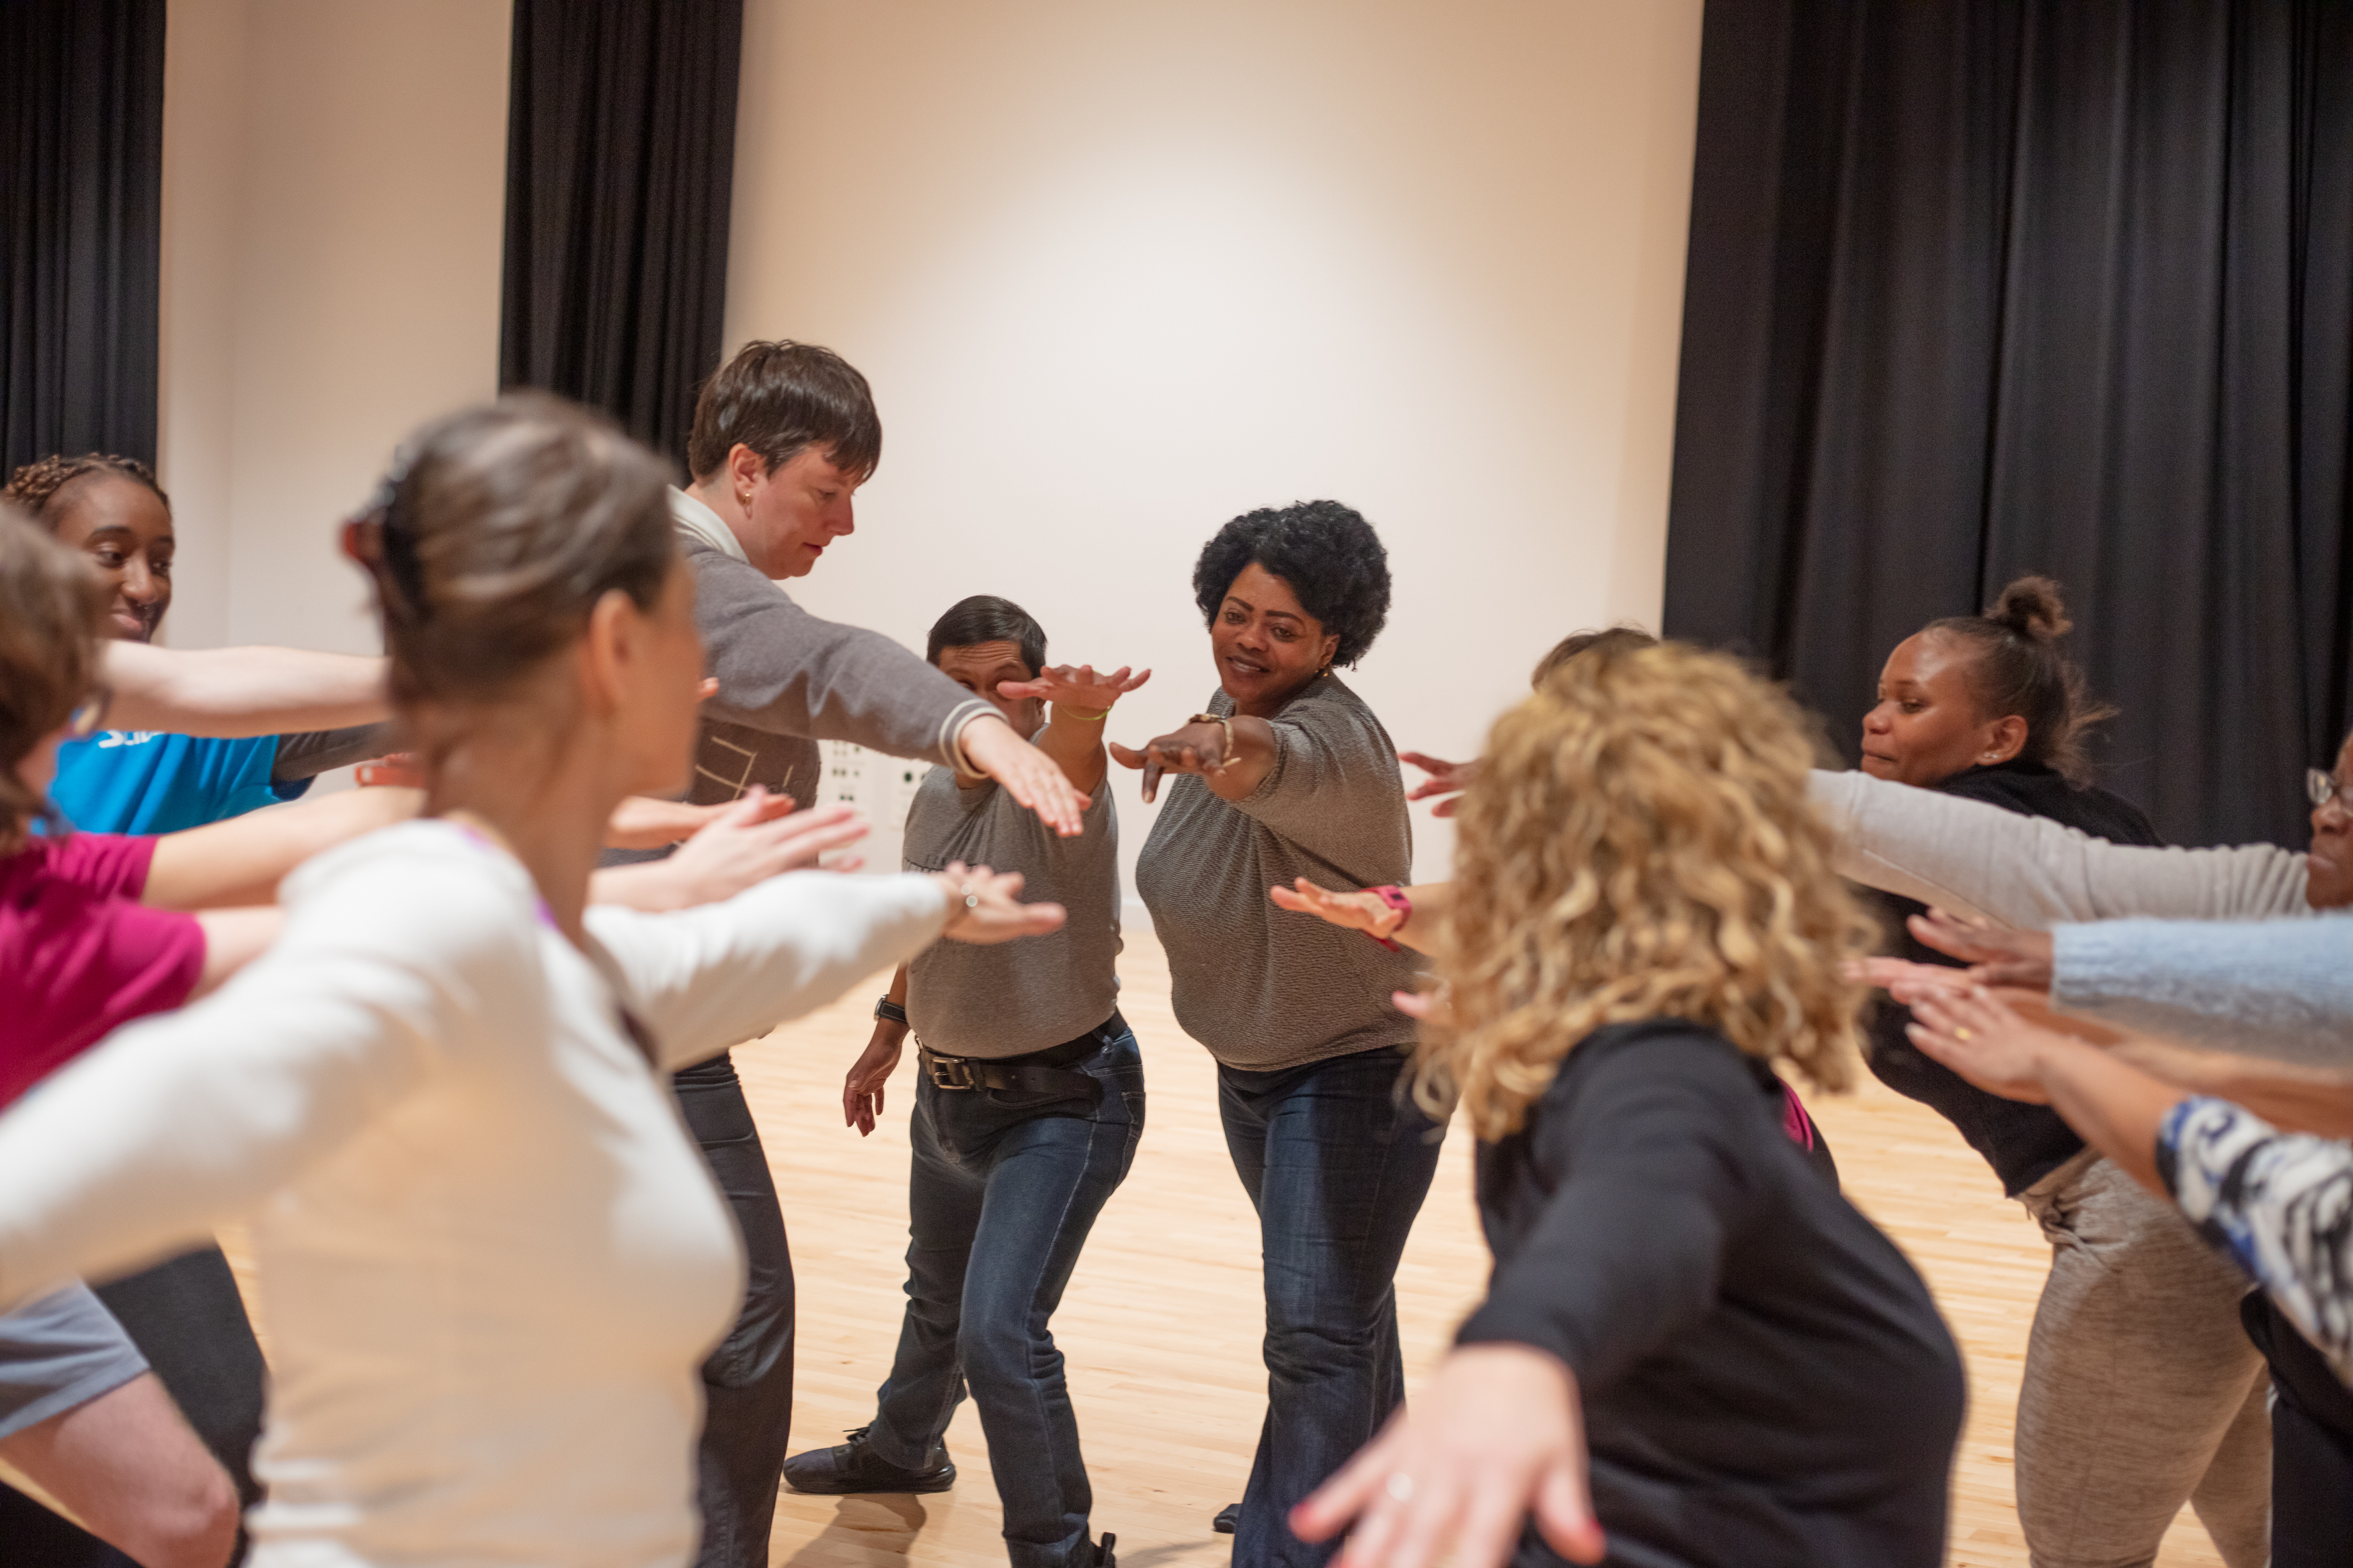 People dancing in a circle with one arm outstretched into the circle centre